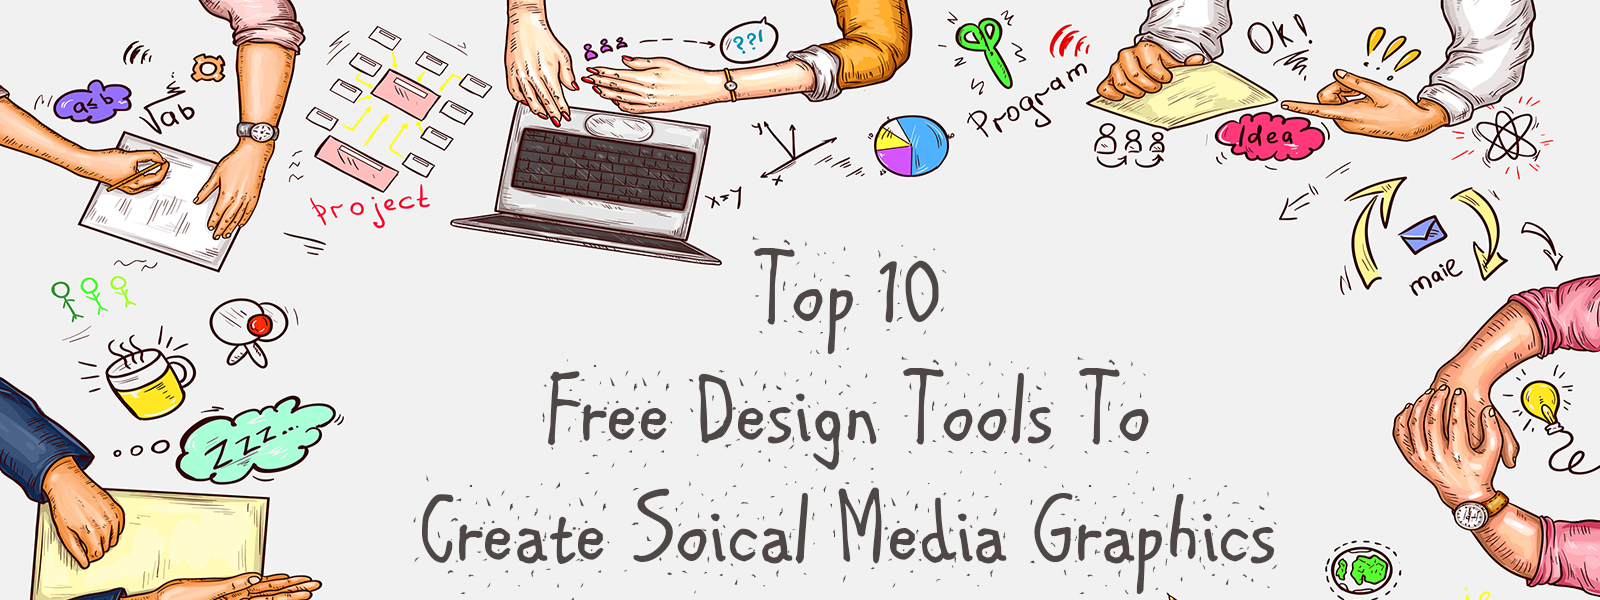 Top 10 Free Graphics Design Tools for Social Media